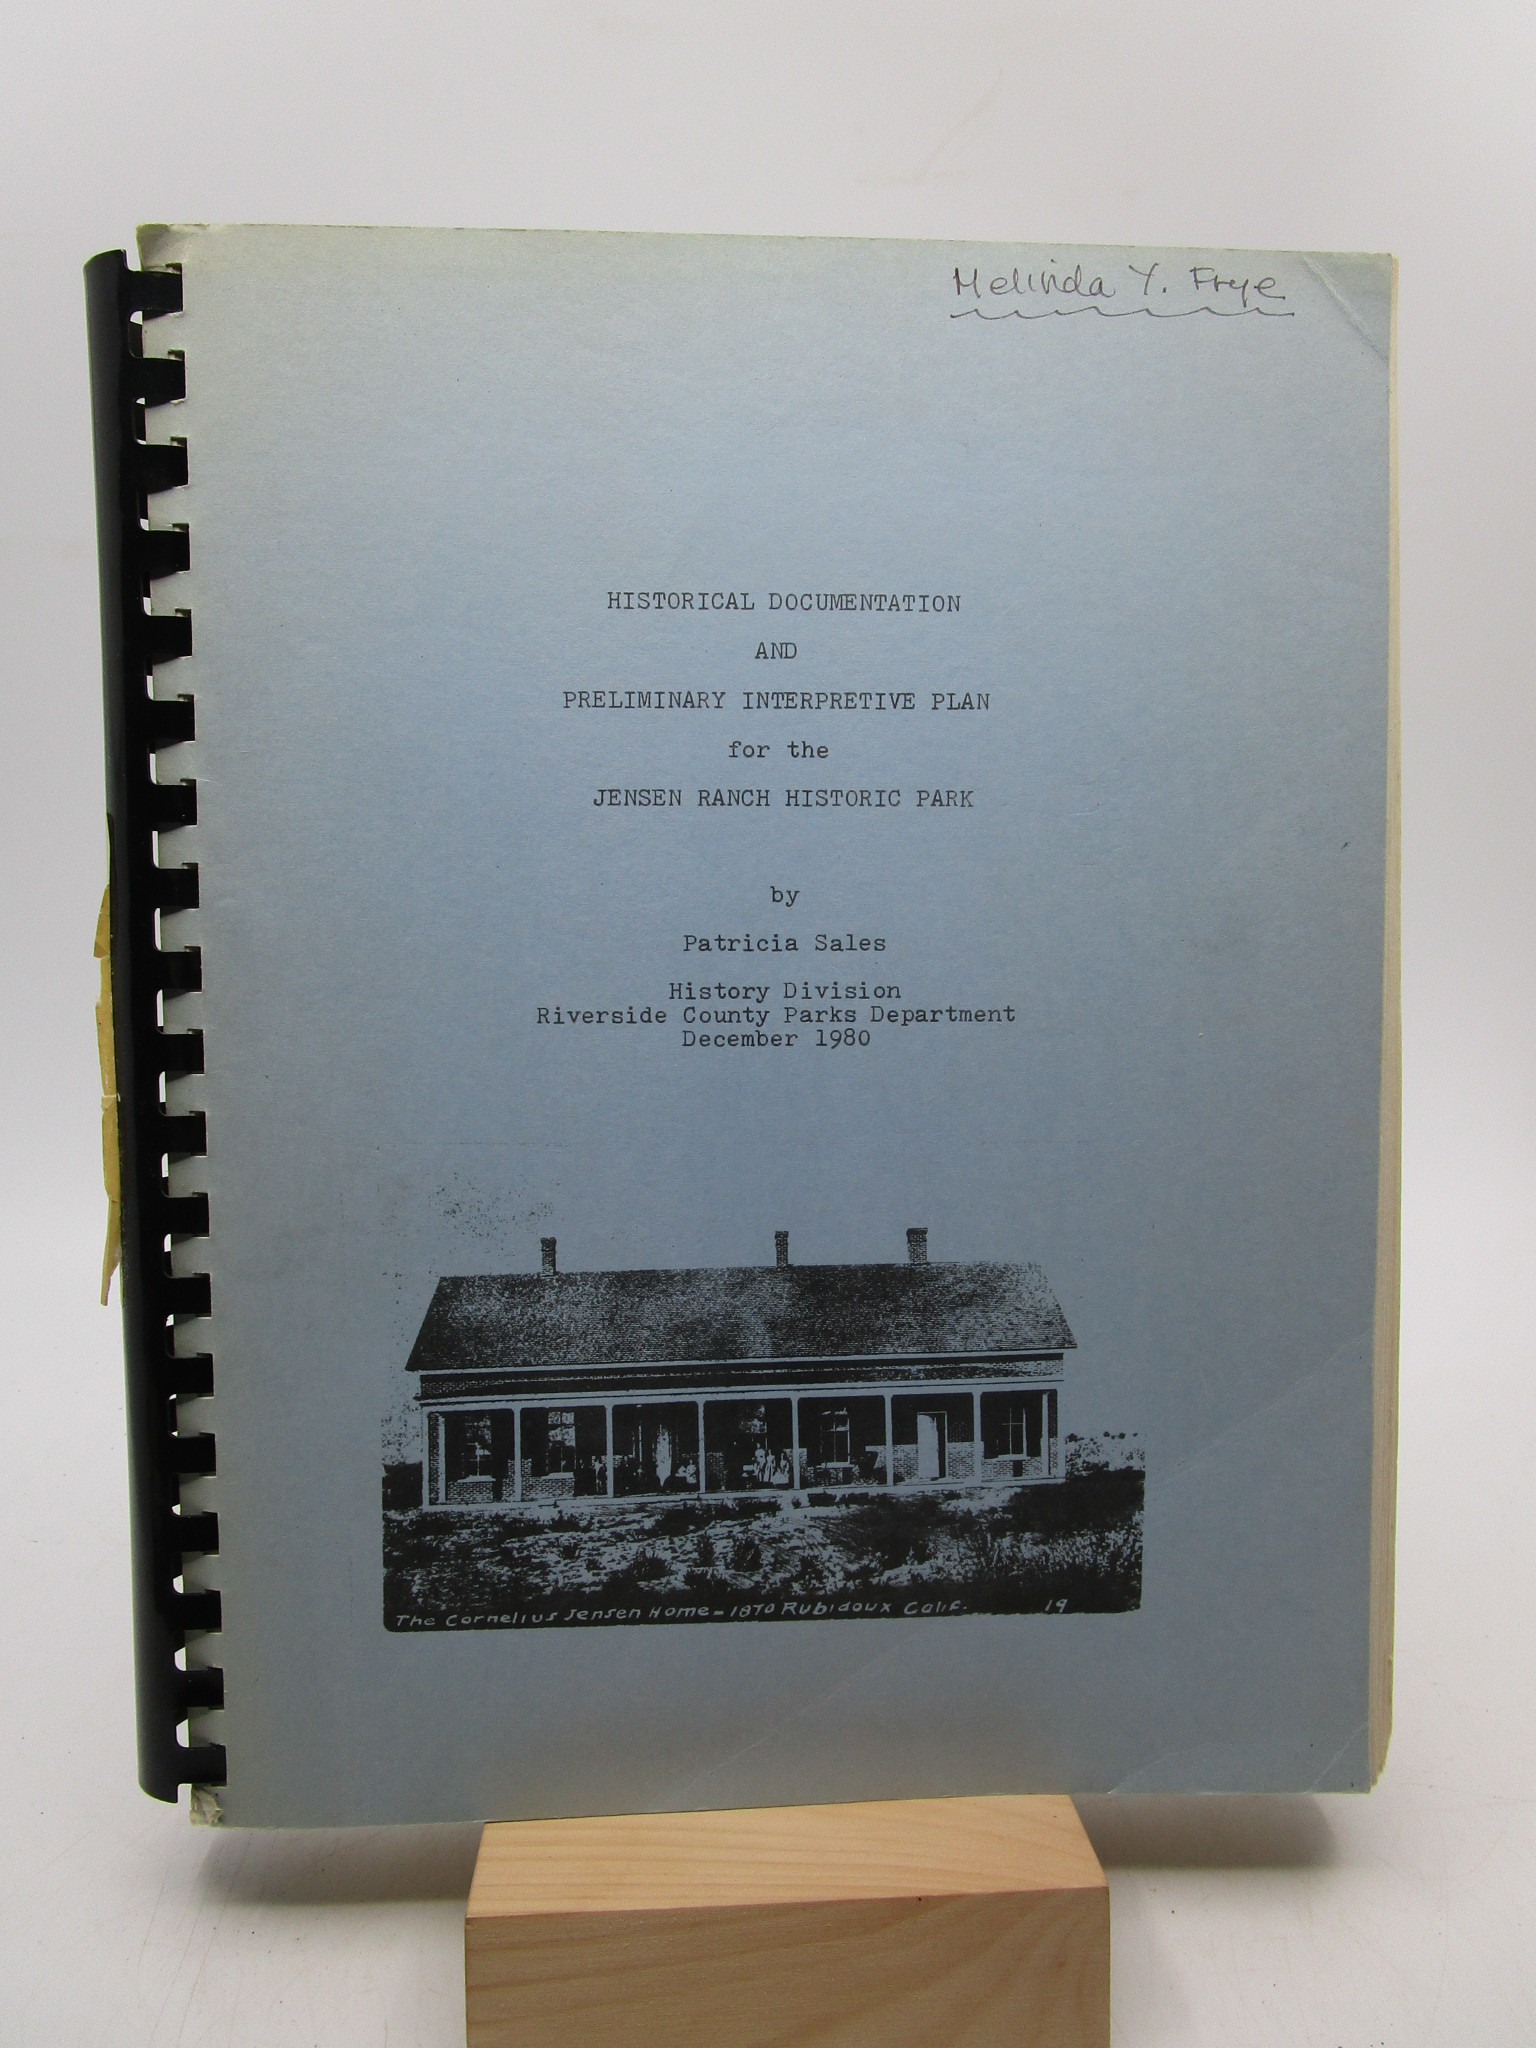 Image for Historical Documentation and Preliminary Interpretive Plan for the Jensen Ranch Historic Park (First Edition)